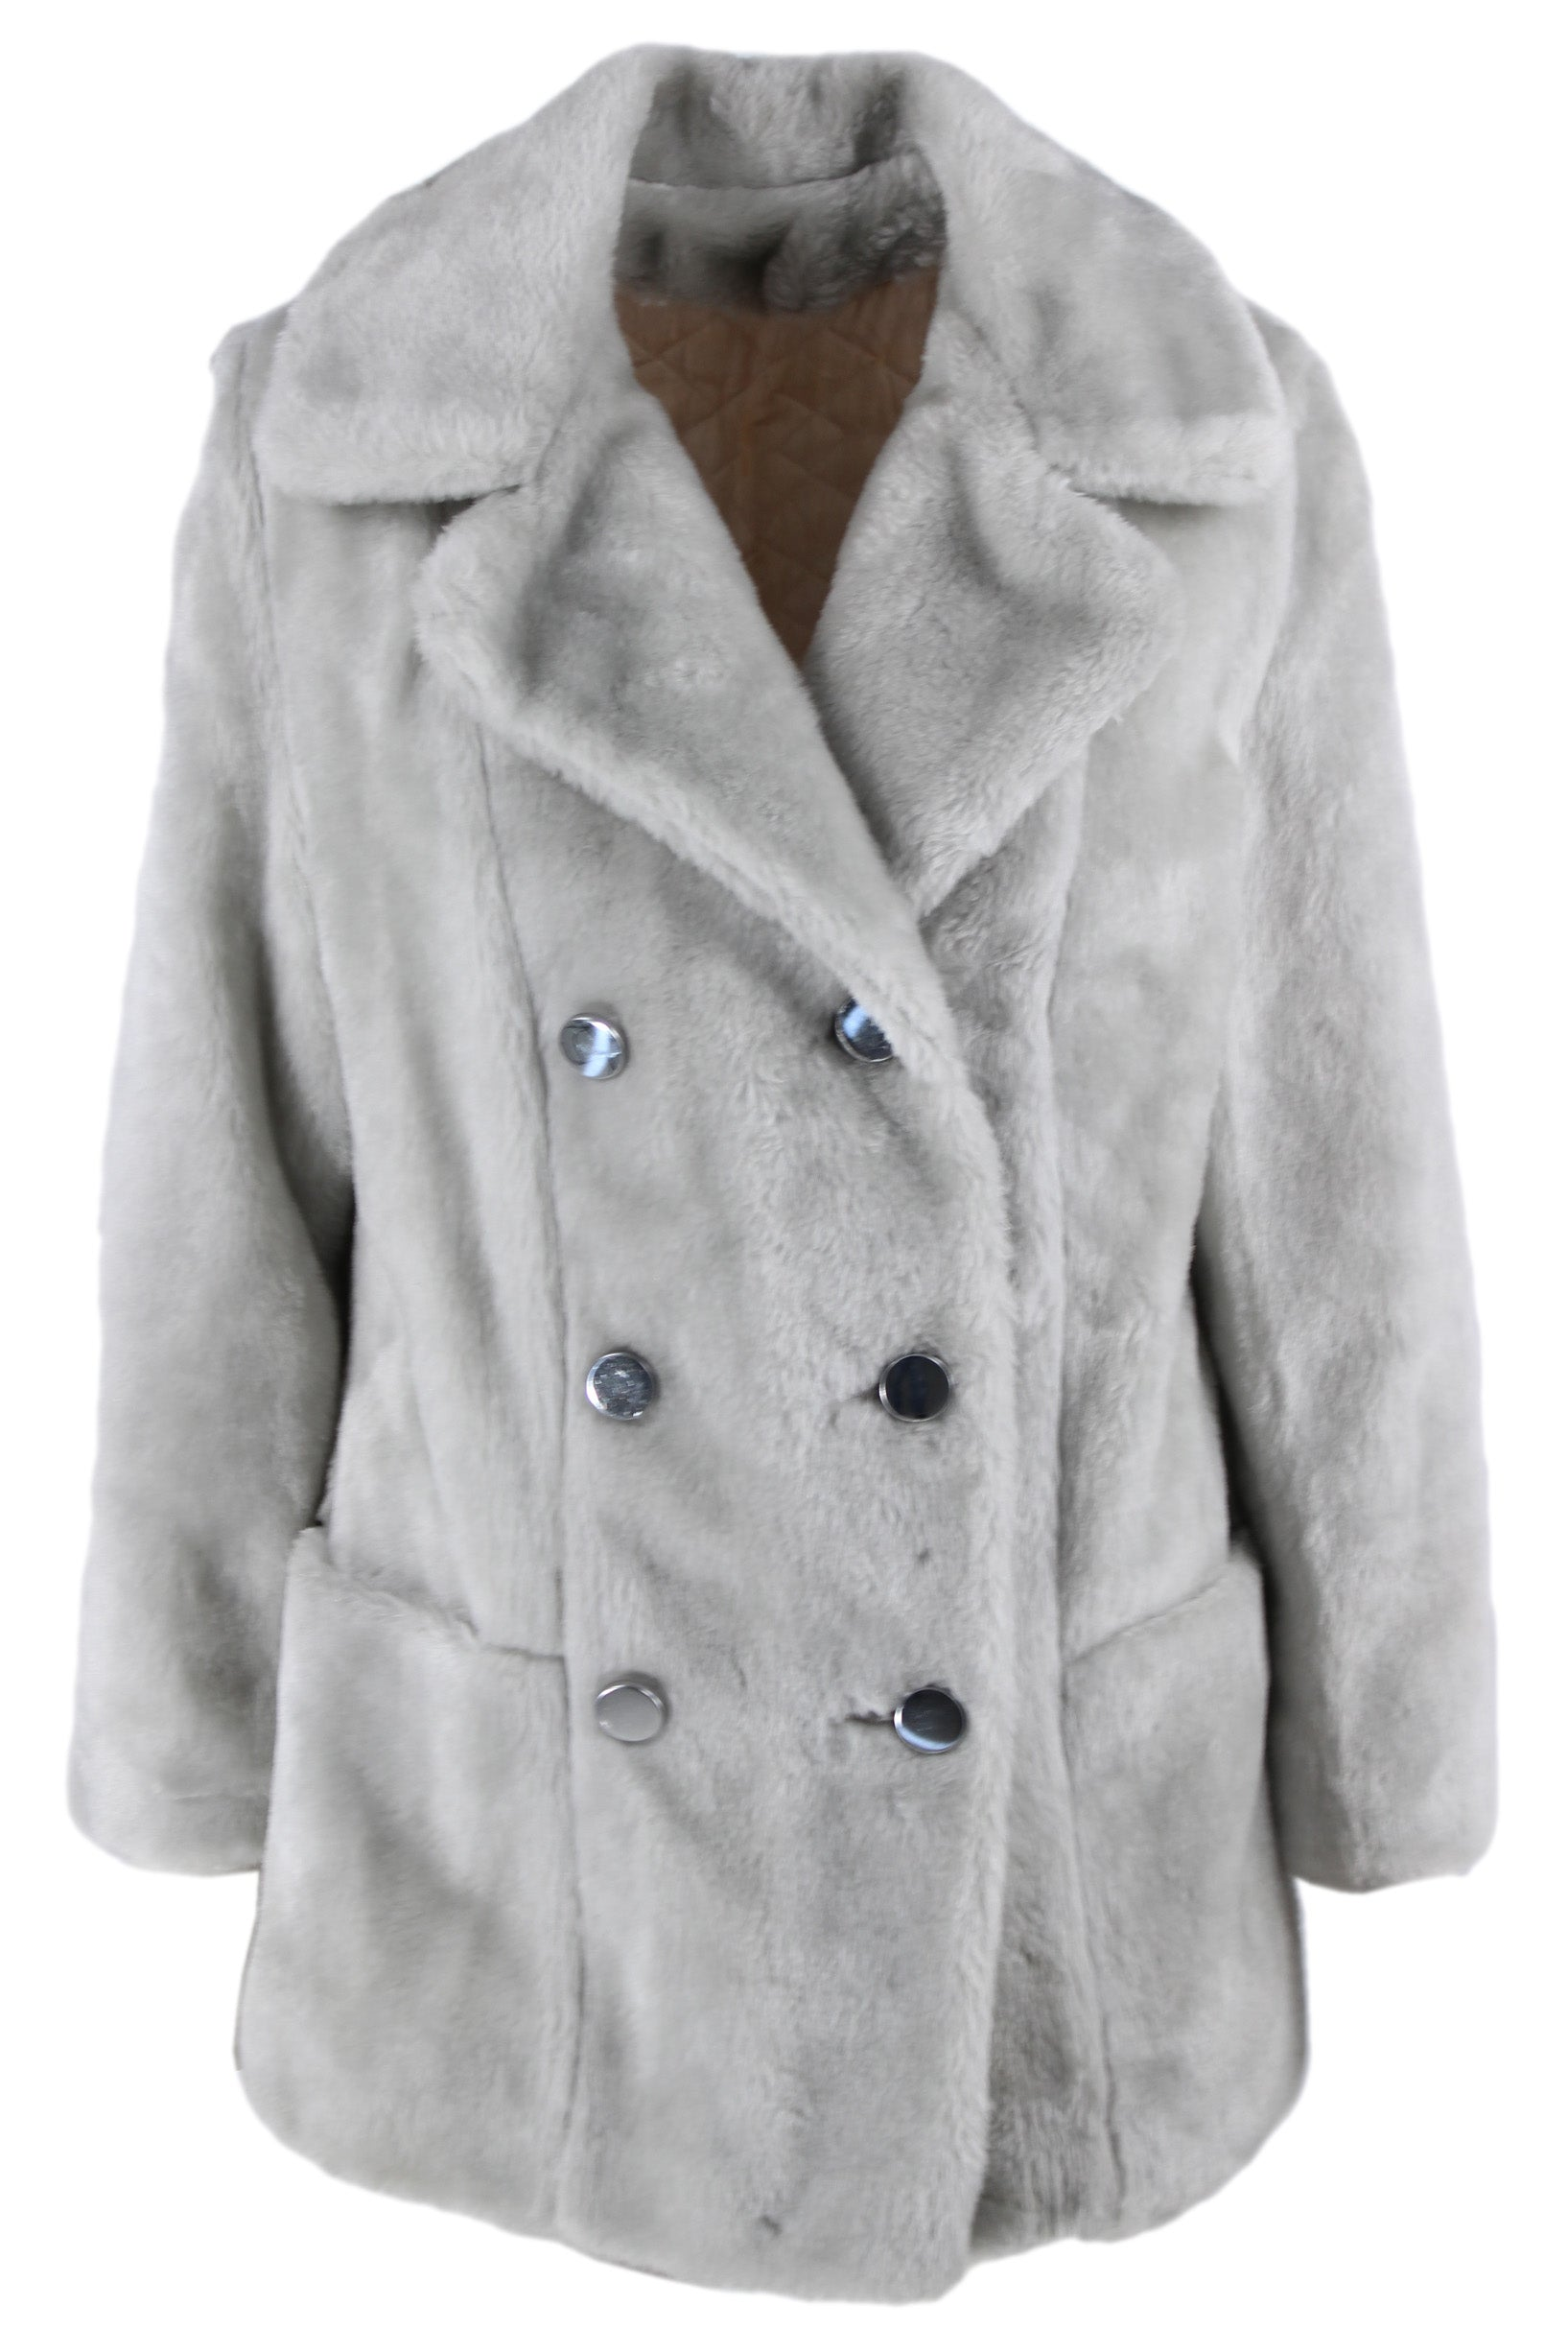 sears fashions grey collared faux fur jacket. features a button down closure & two pockets.